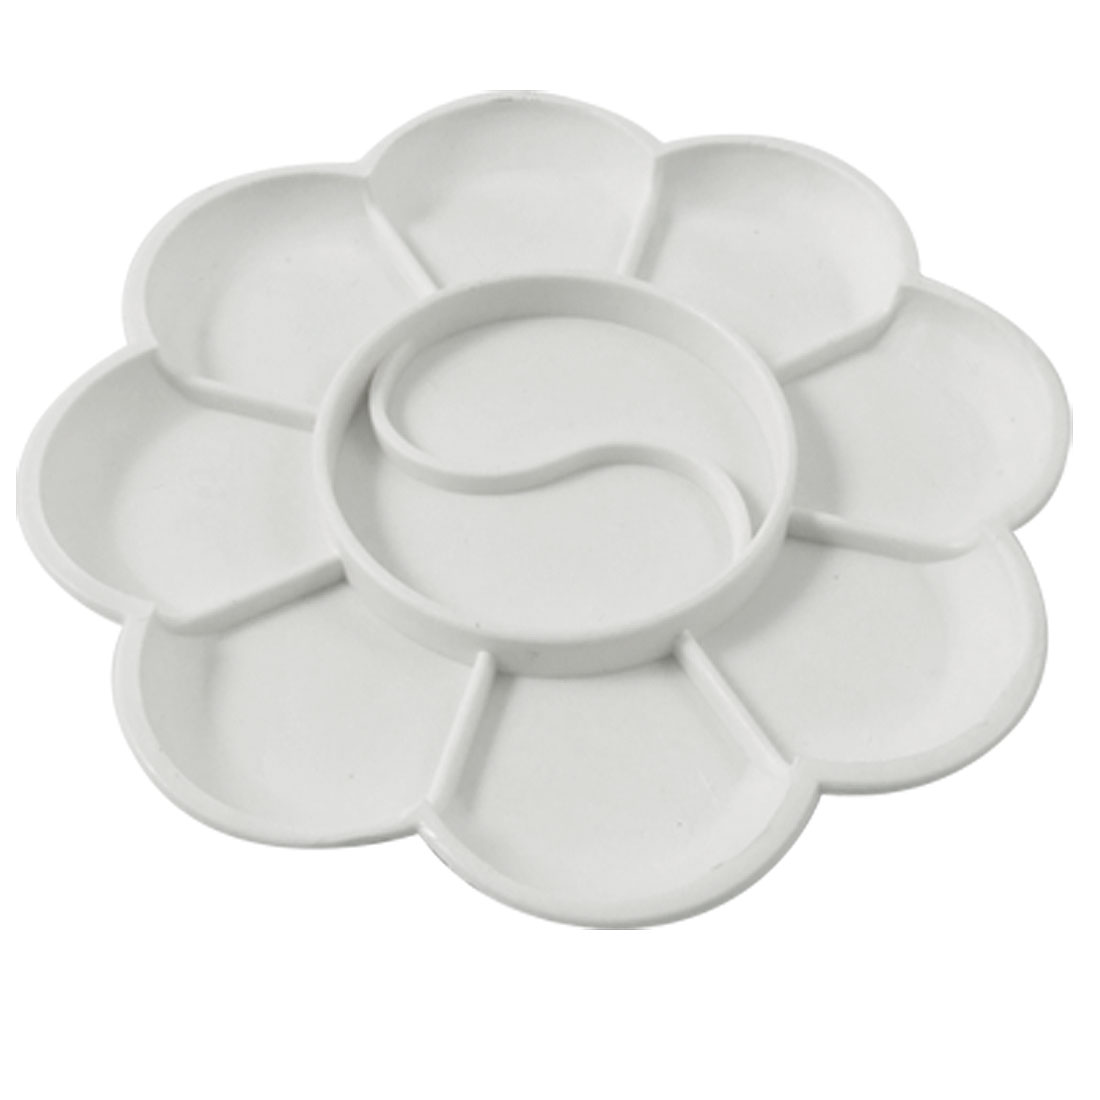 Plastic 10 Compartment Watercolor Mixing Plate Paint Palette White Ofmsd